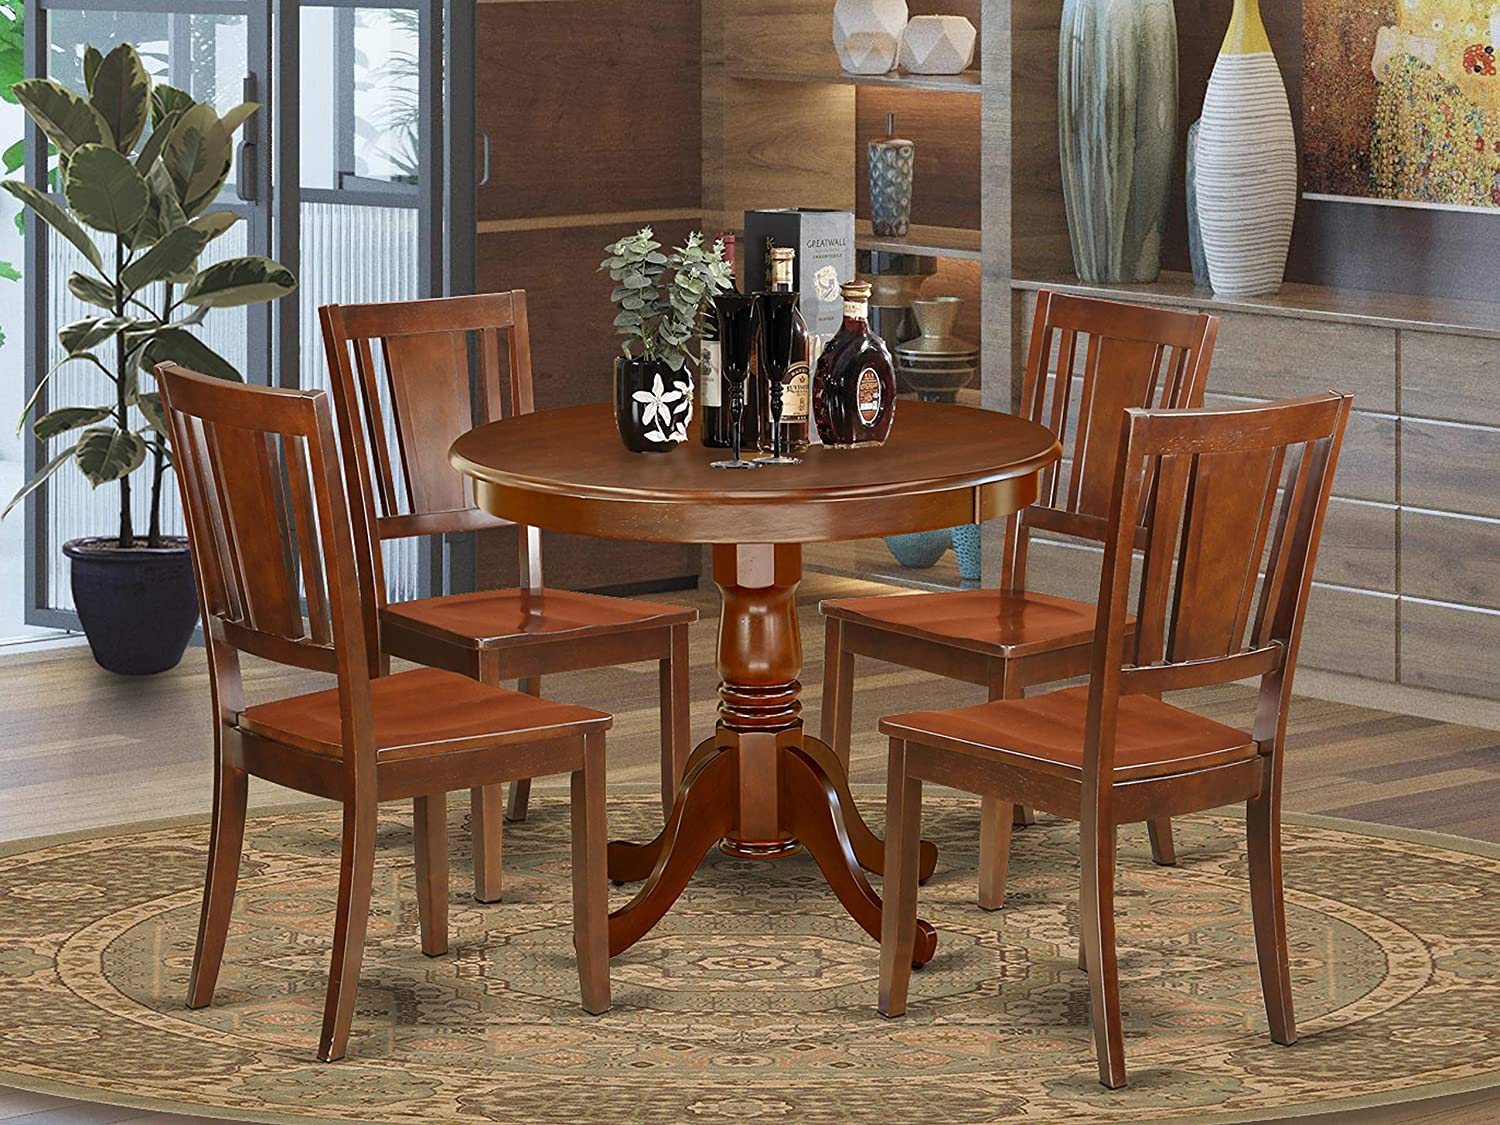 mahogany dining table with modern chairs